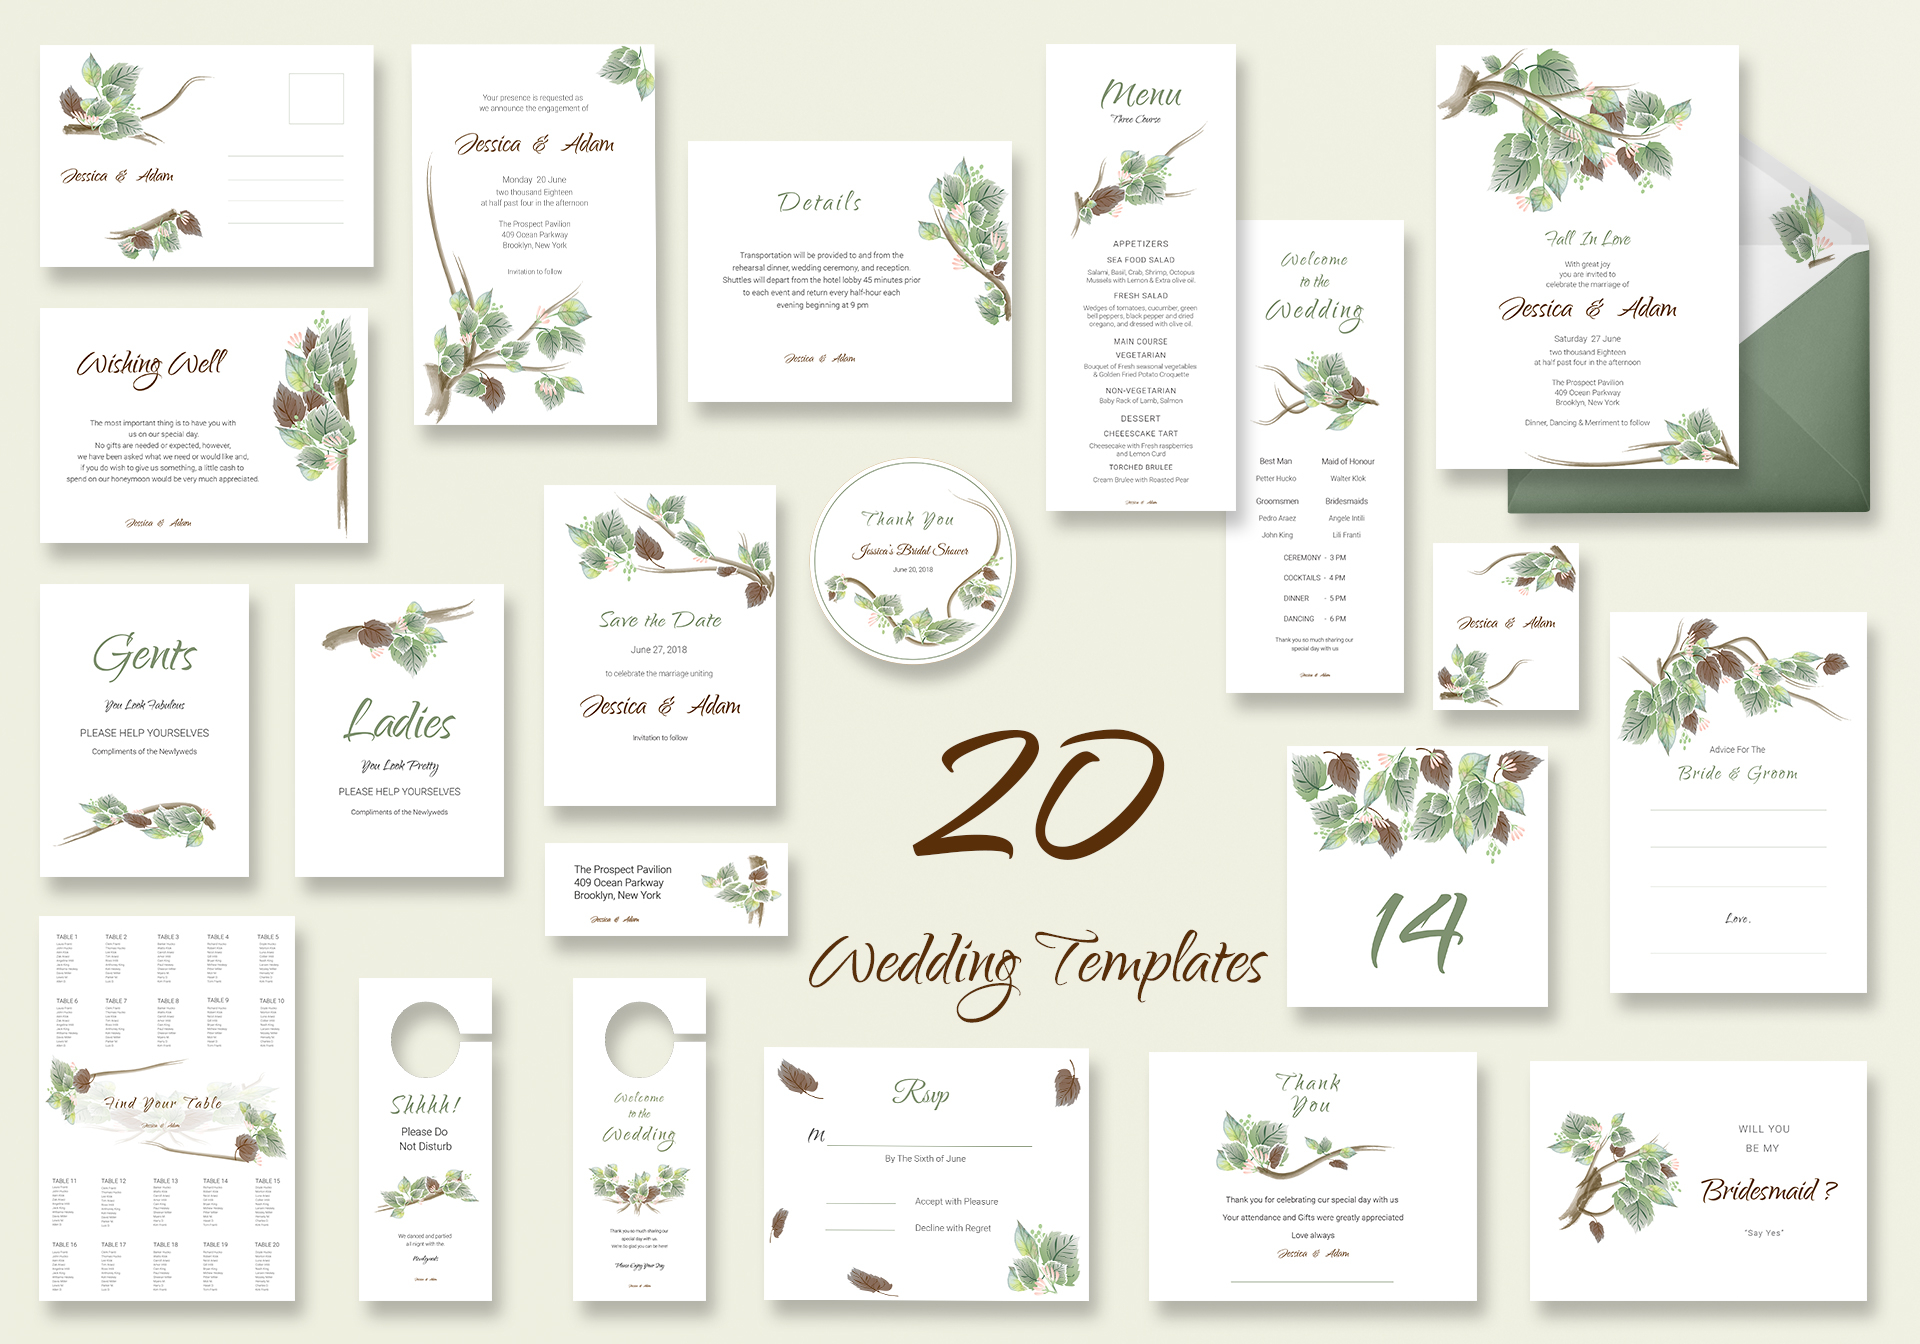 Fall Wedding Templates